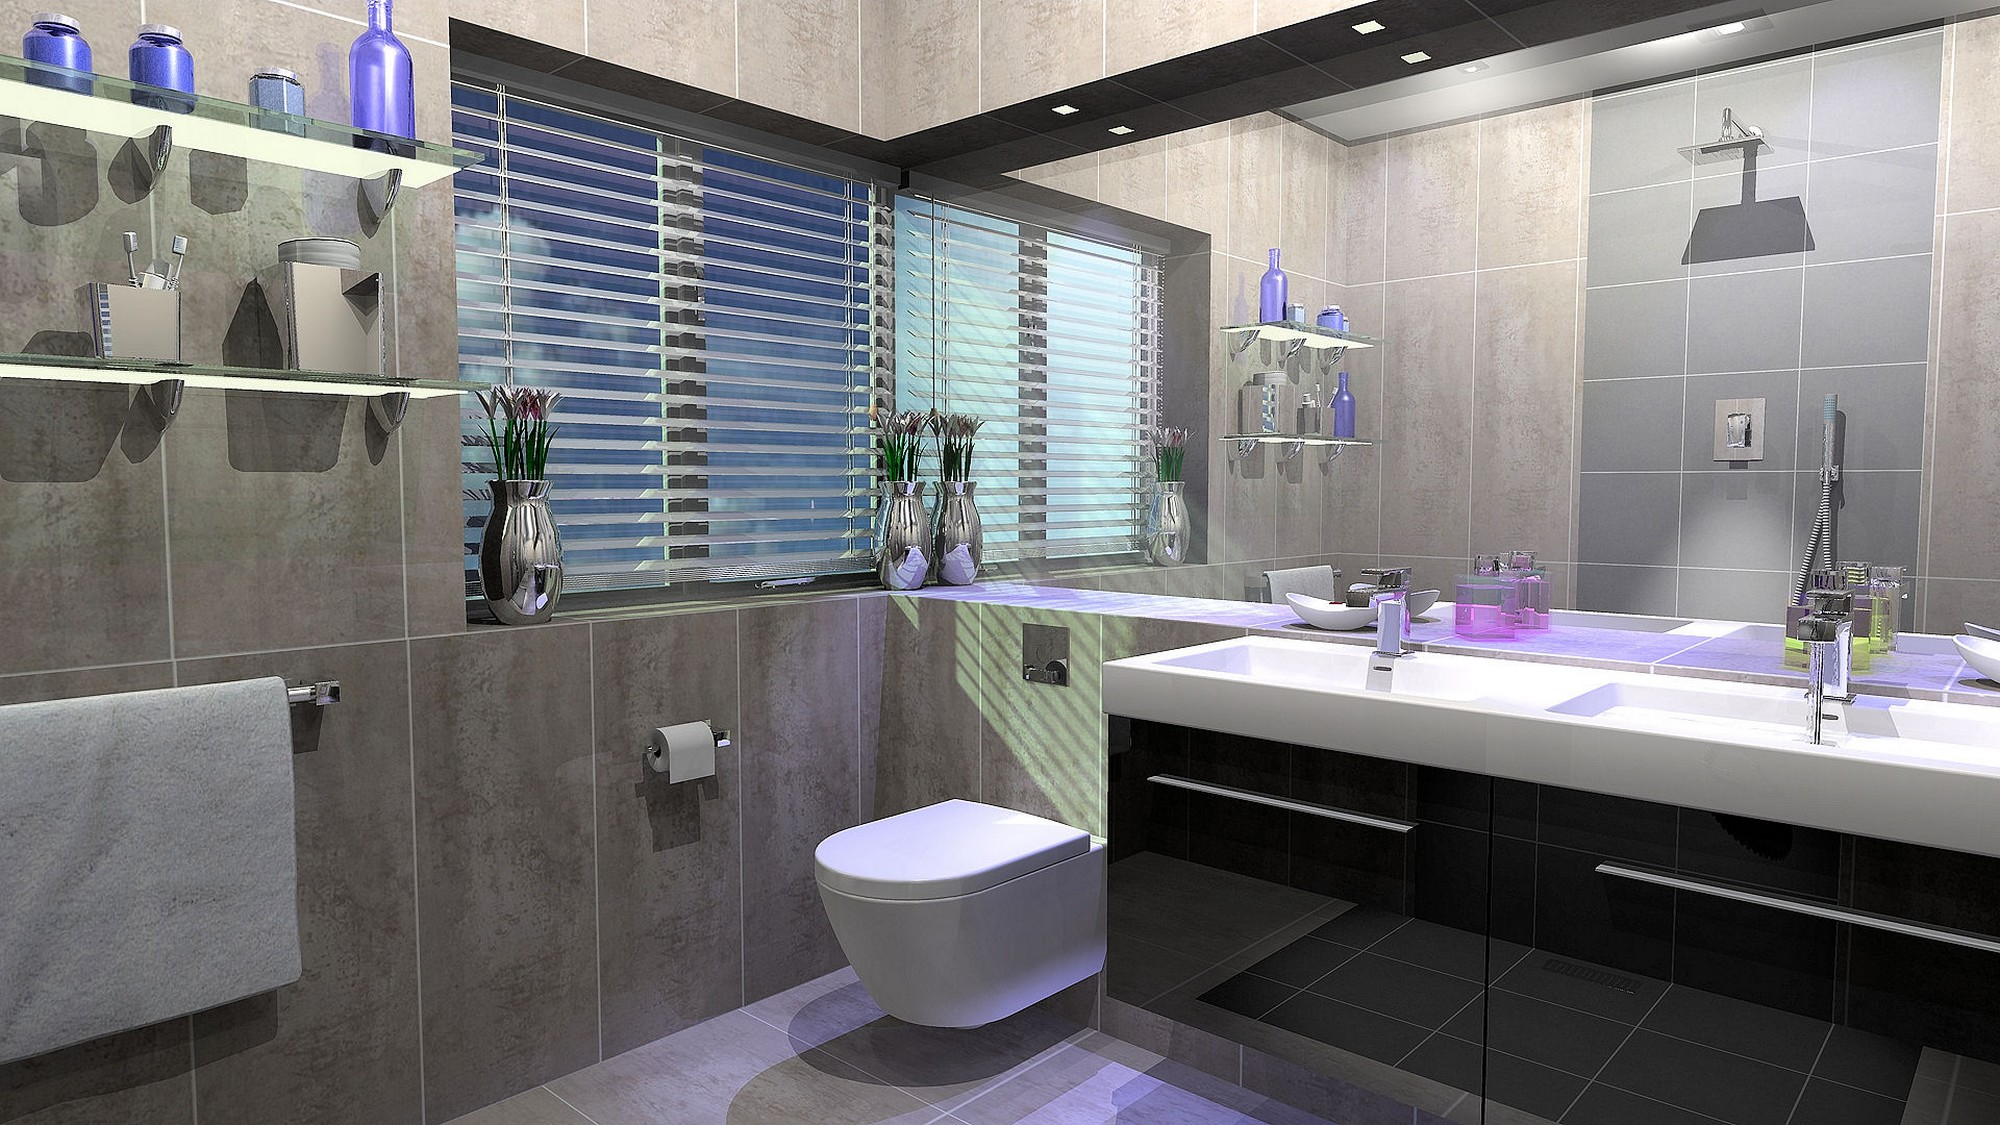 luxury-bathroom-decorating-ideas-as-bathroom-tile-designs-with-simple-ornaments-to-make-for-Bathroom-design-inspiration-1